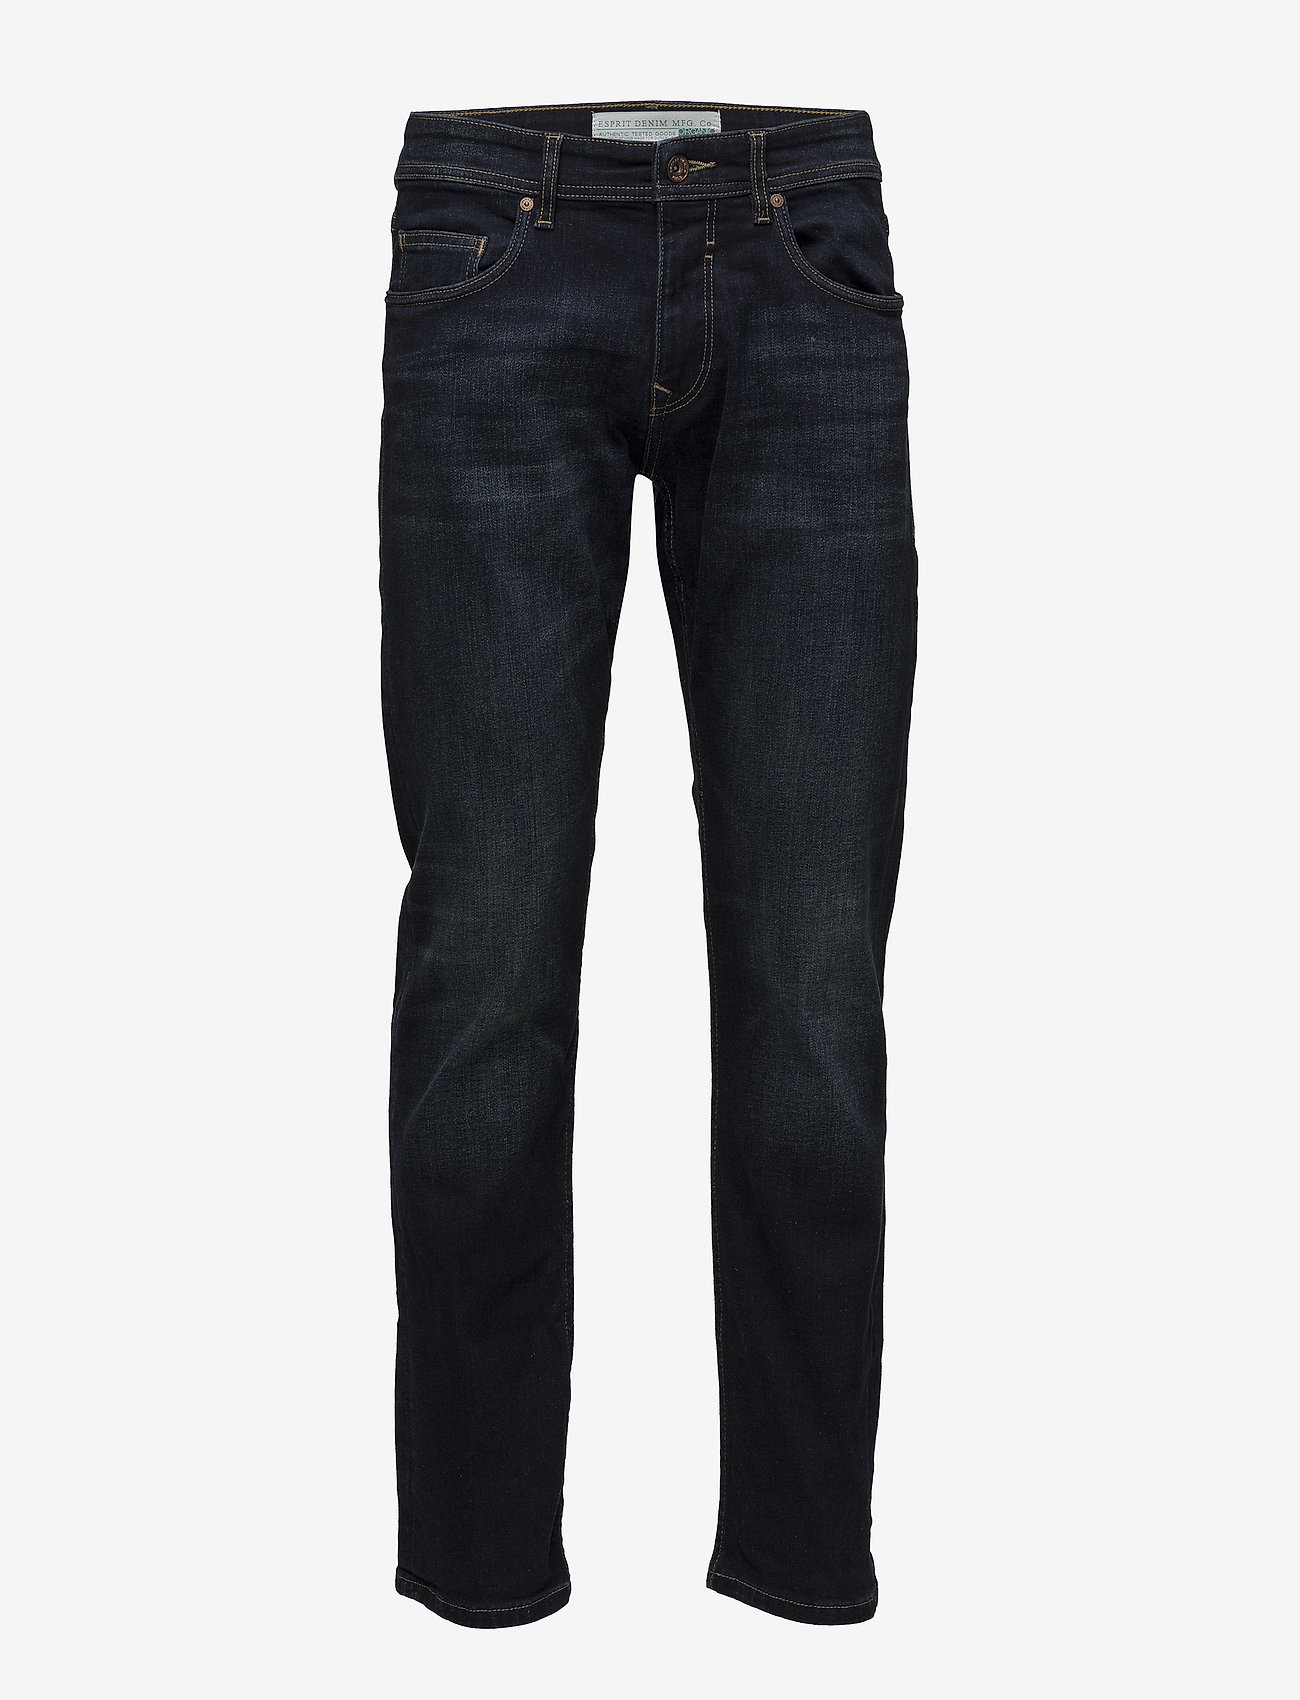 Esprit Casual - Pants denim - regular jeans - blue dark wash - 0